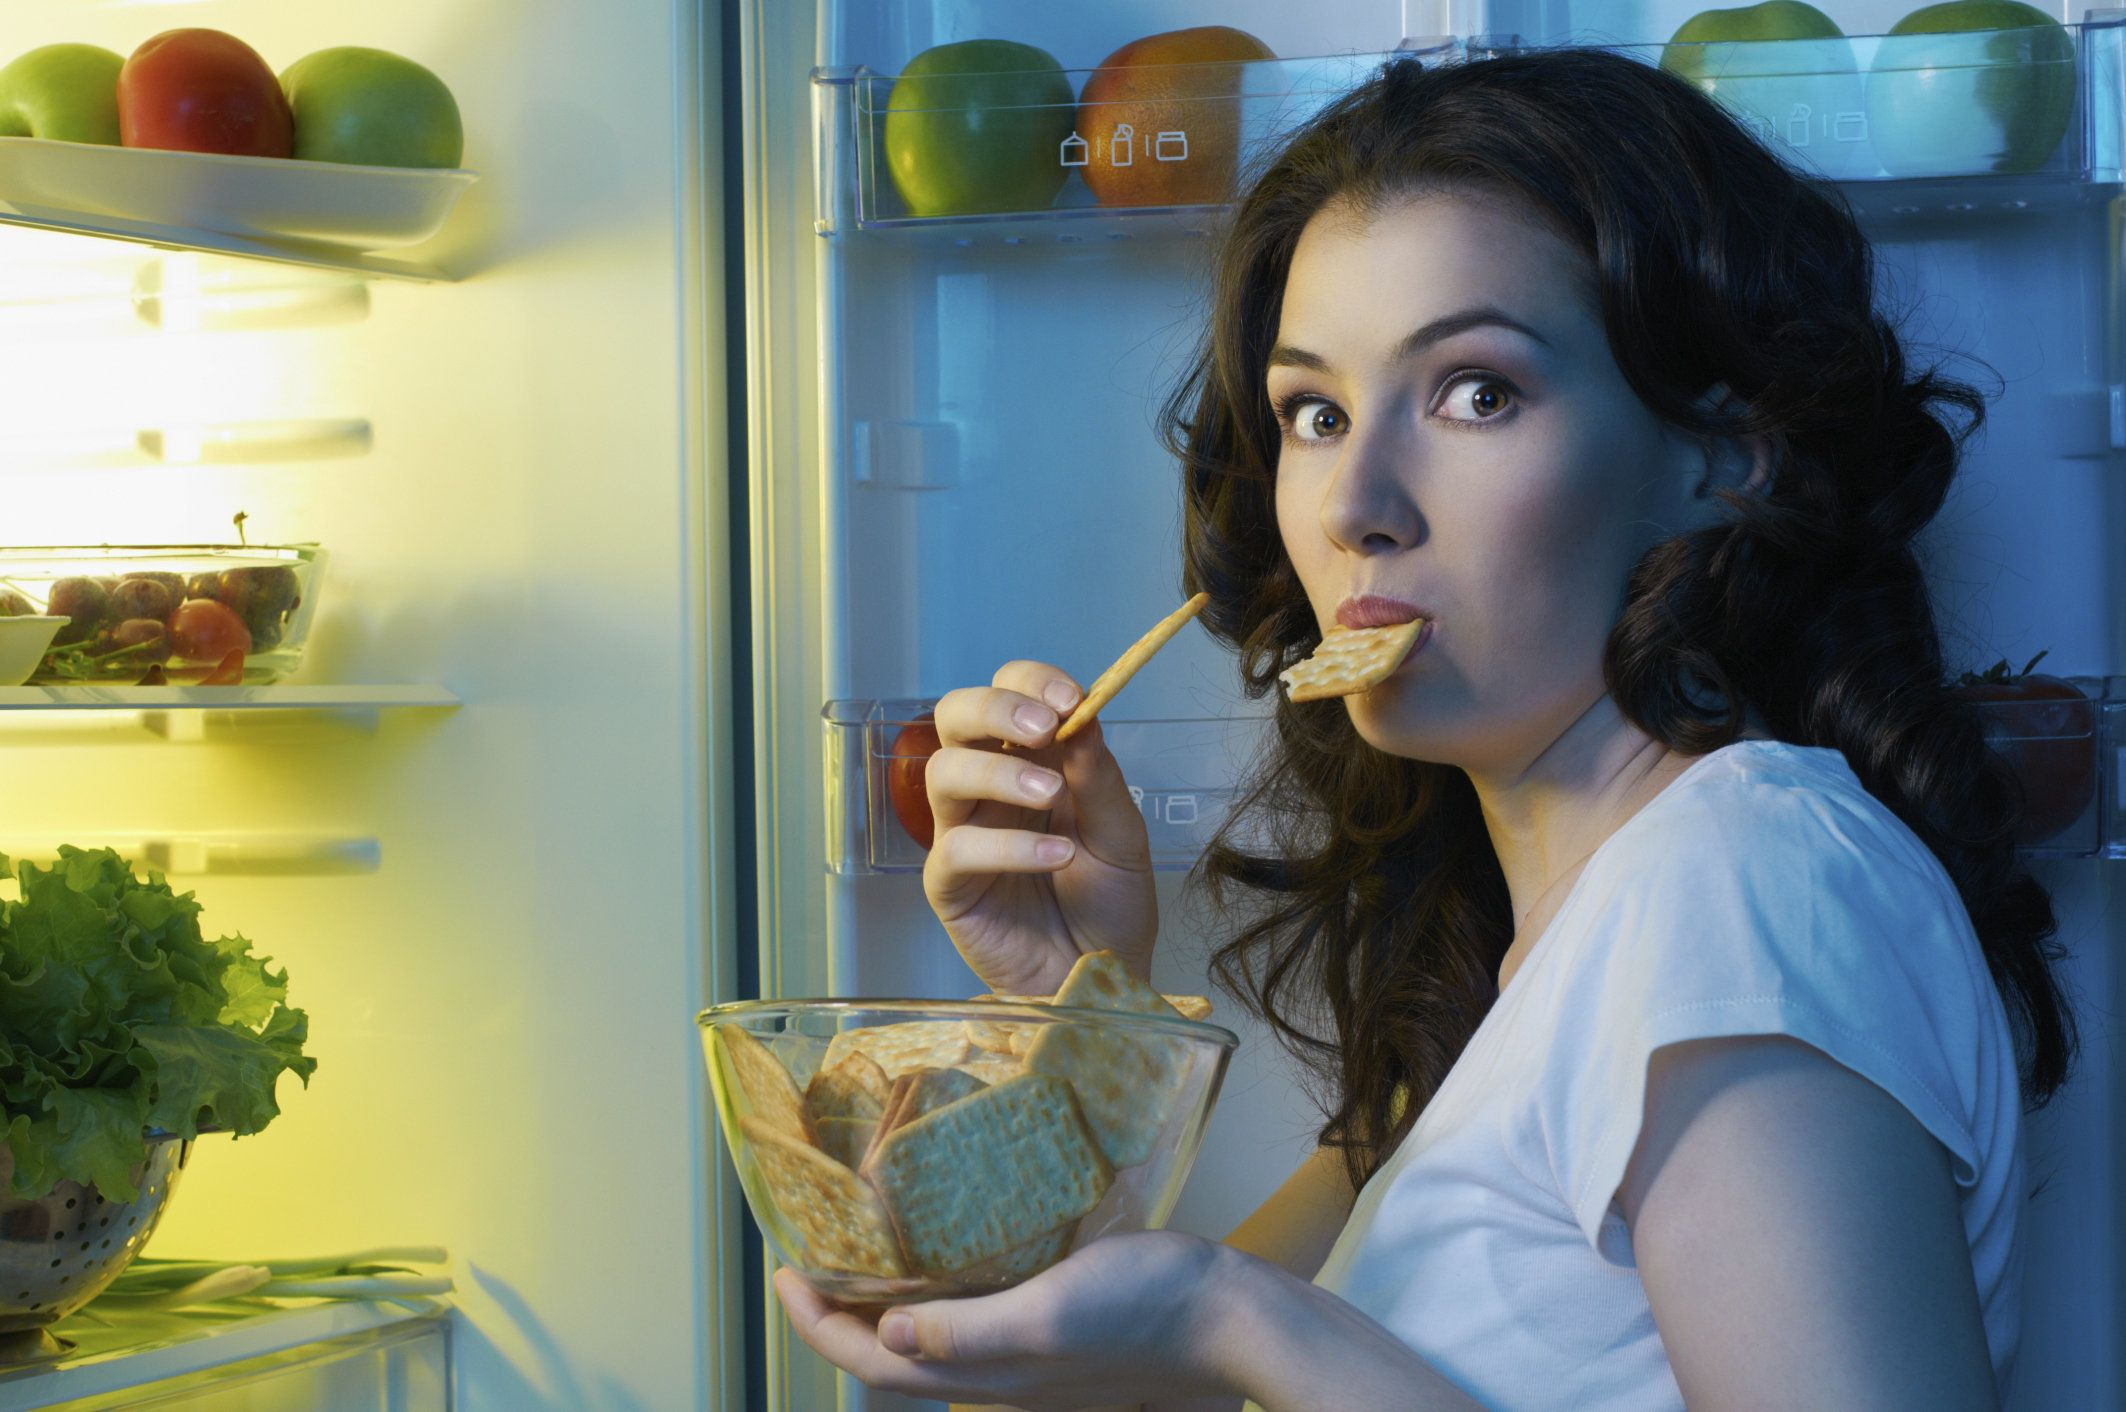 Eating at the wrong time can impair learning and memory, a new study suggests.